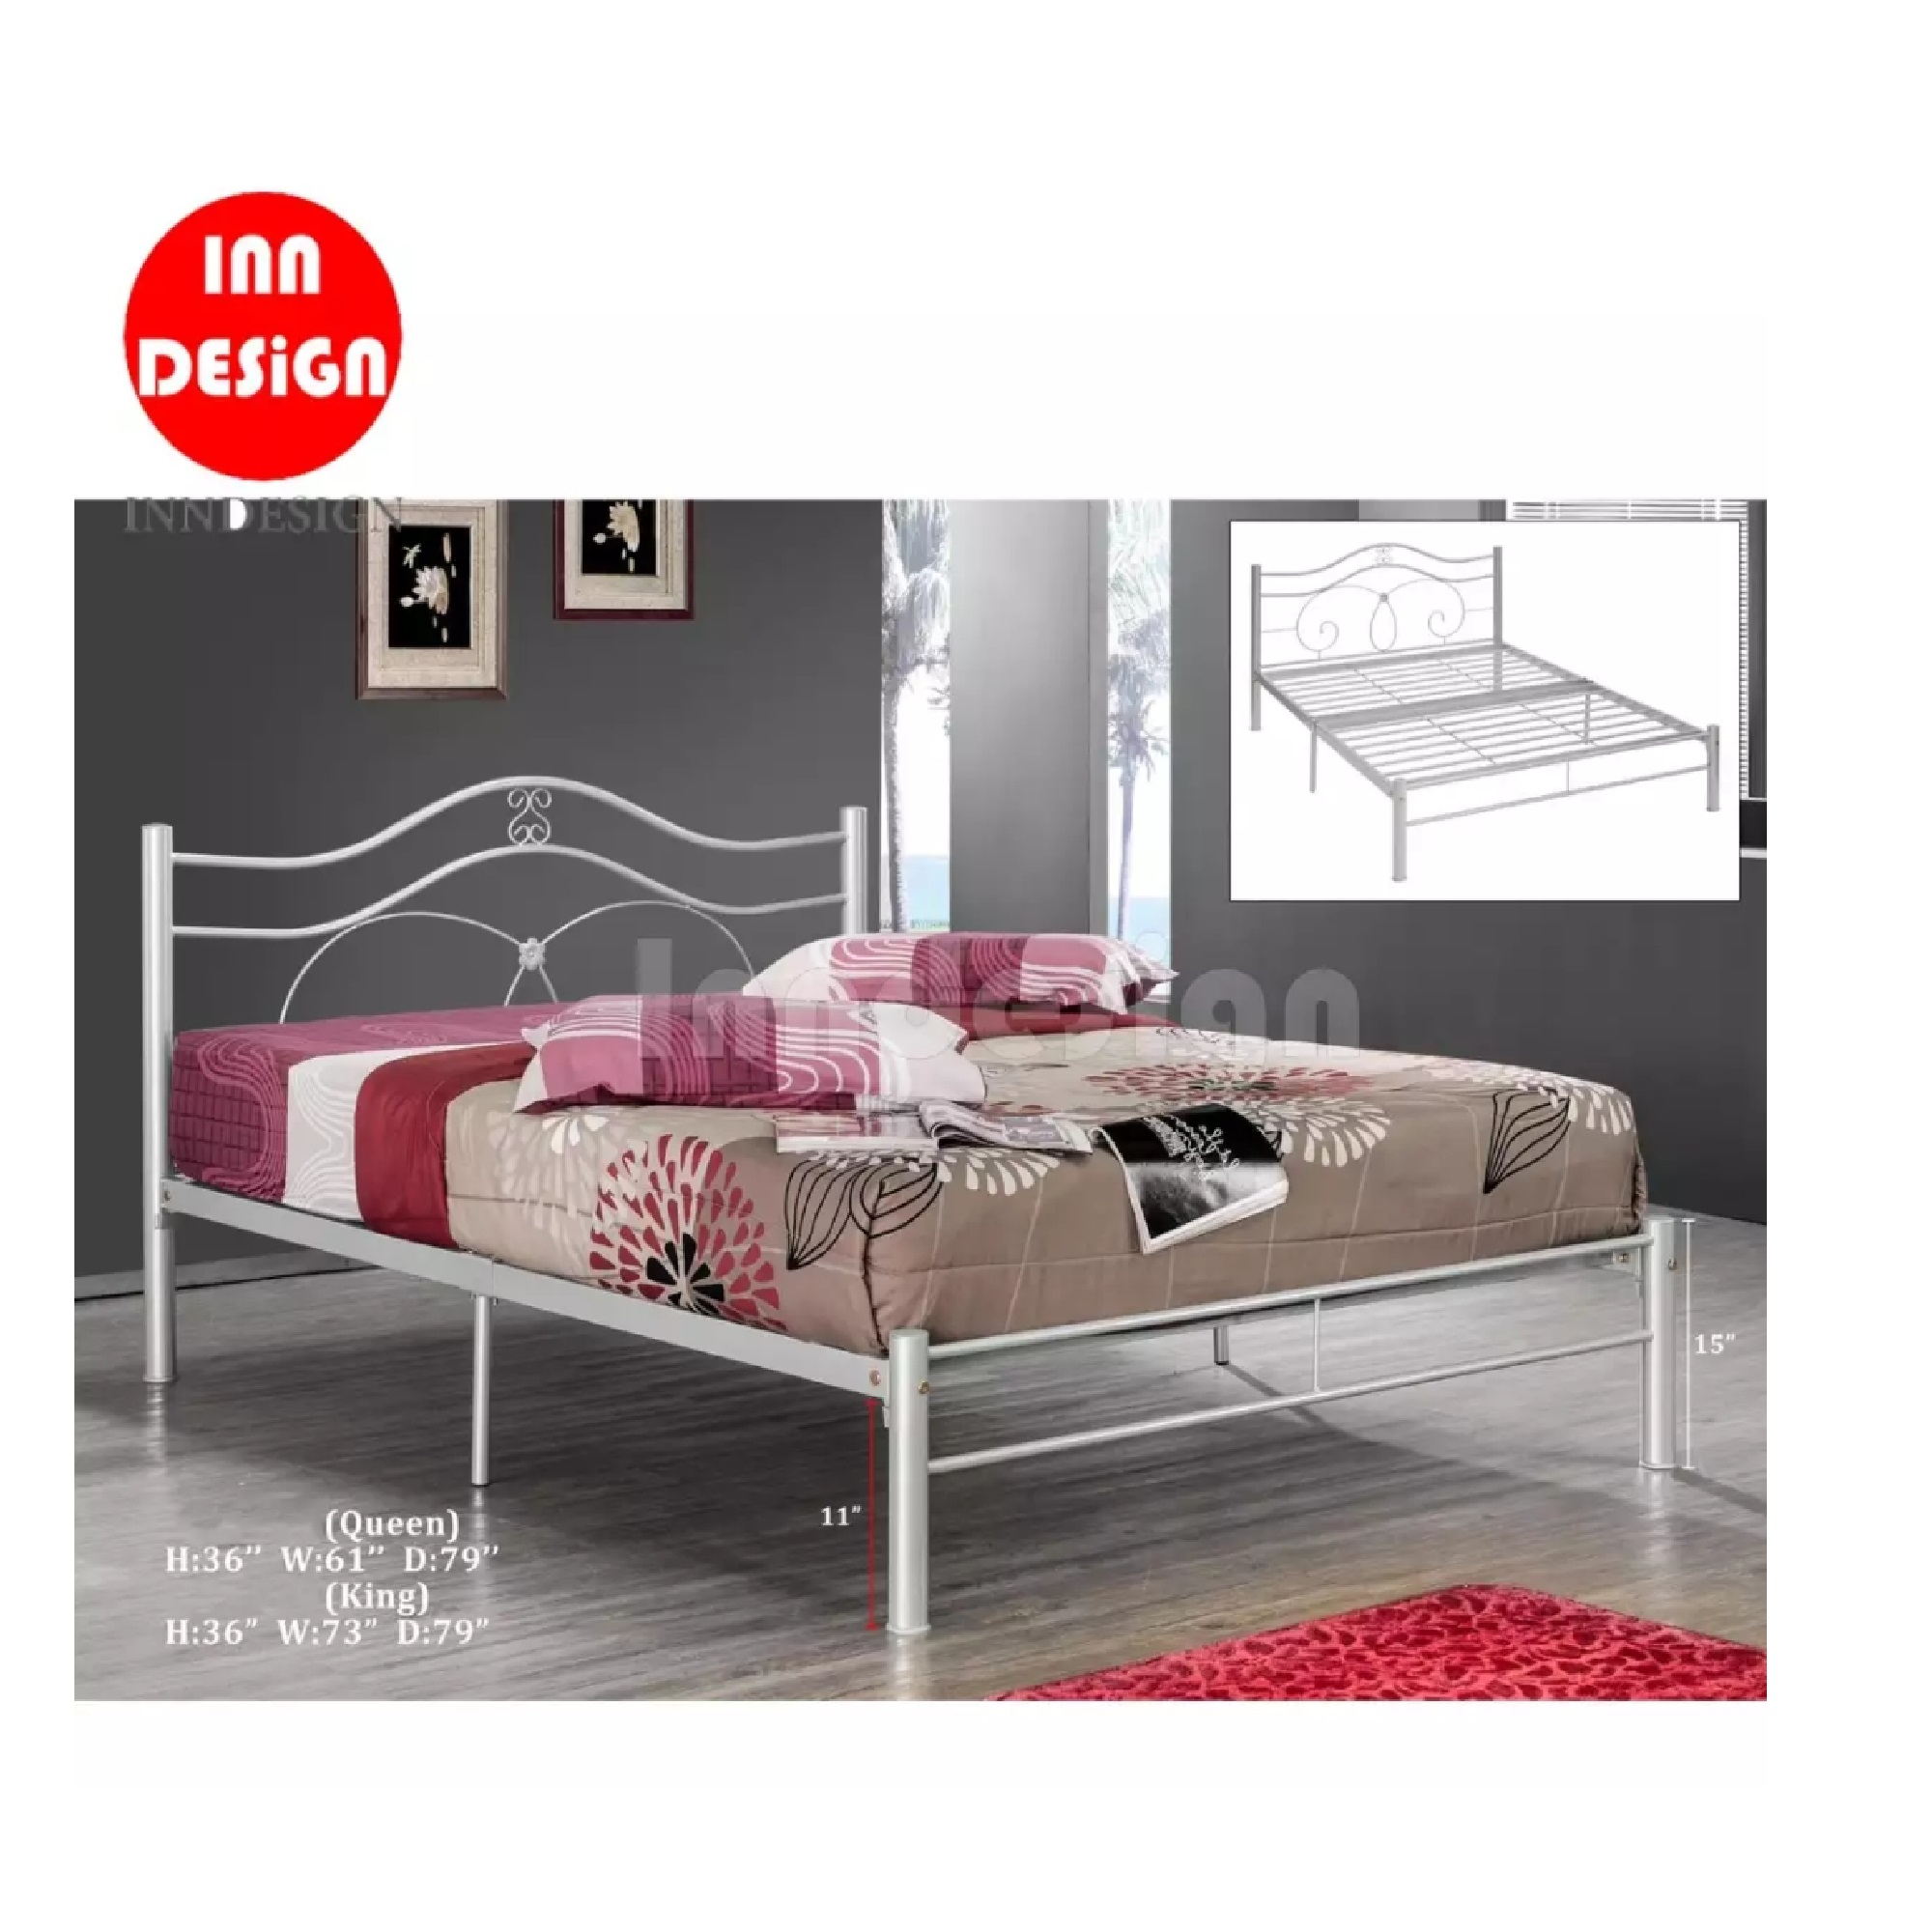 INNDESIGN King Metal Bed / Metal Bed Frame (Silver)